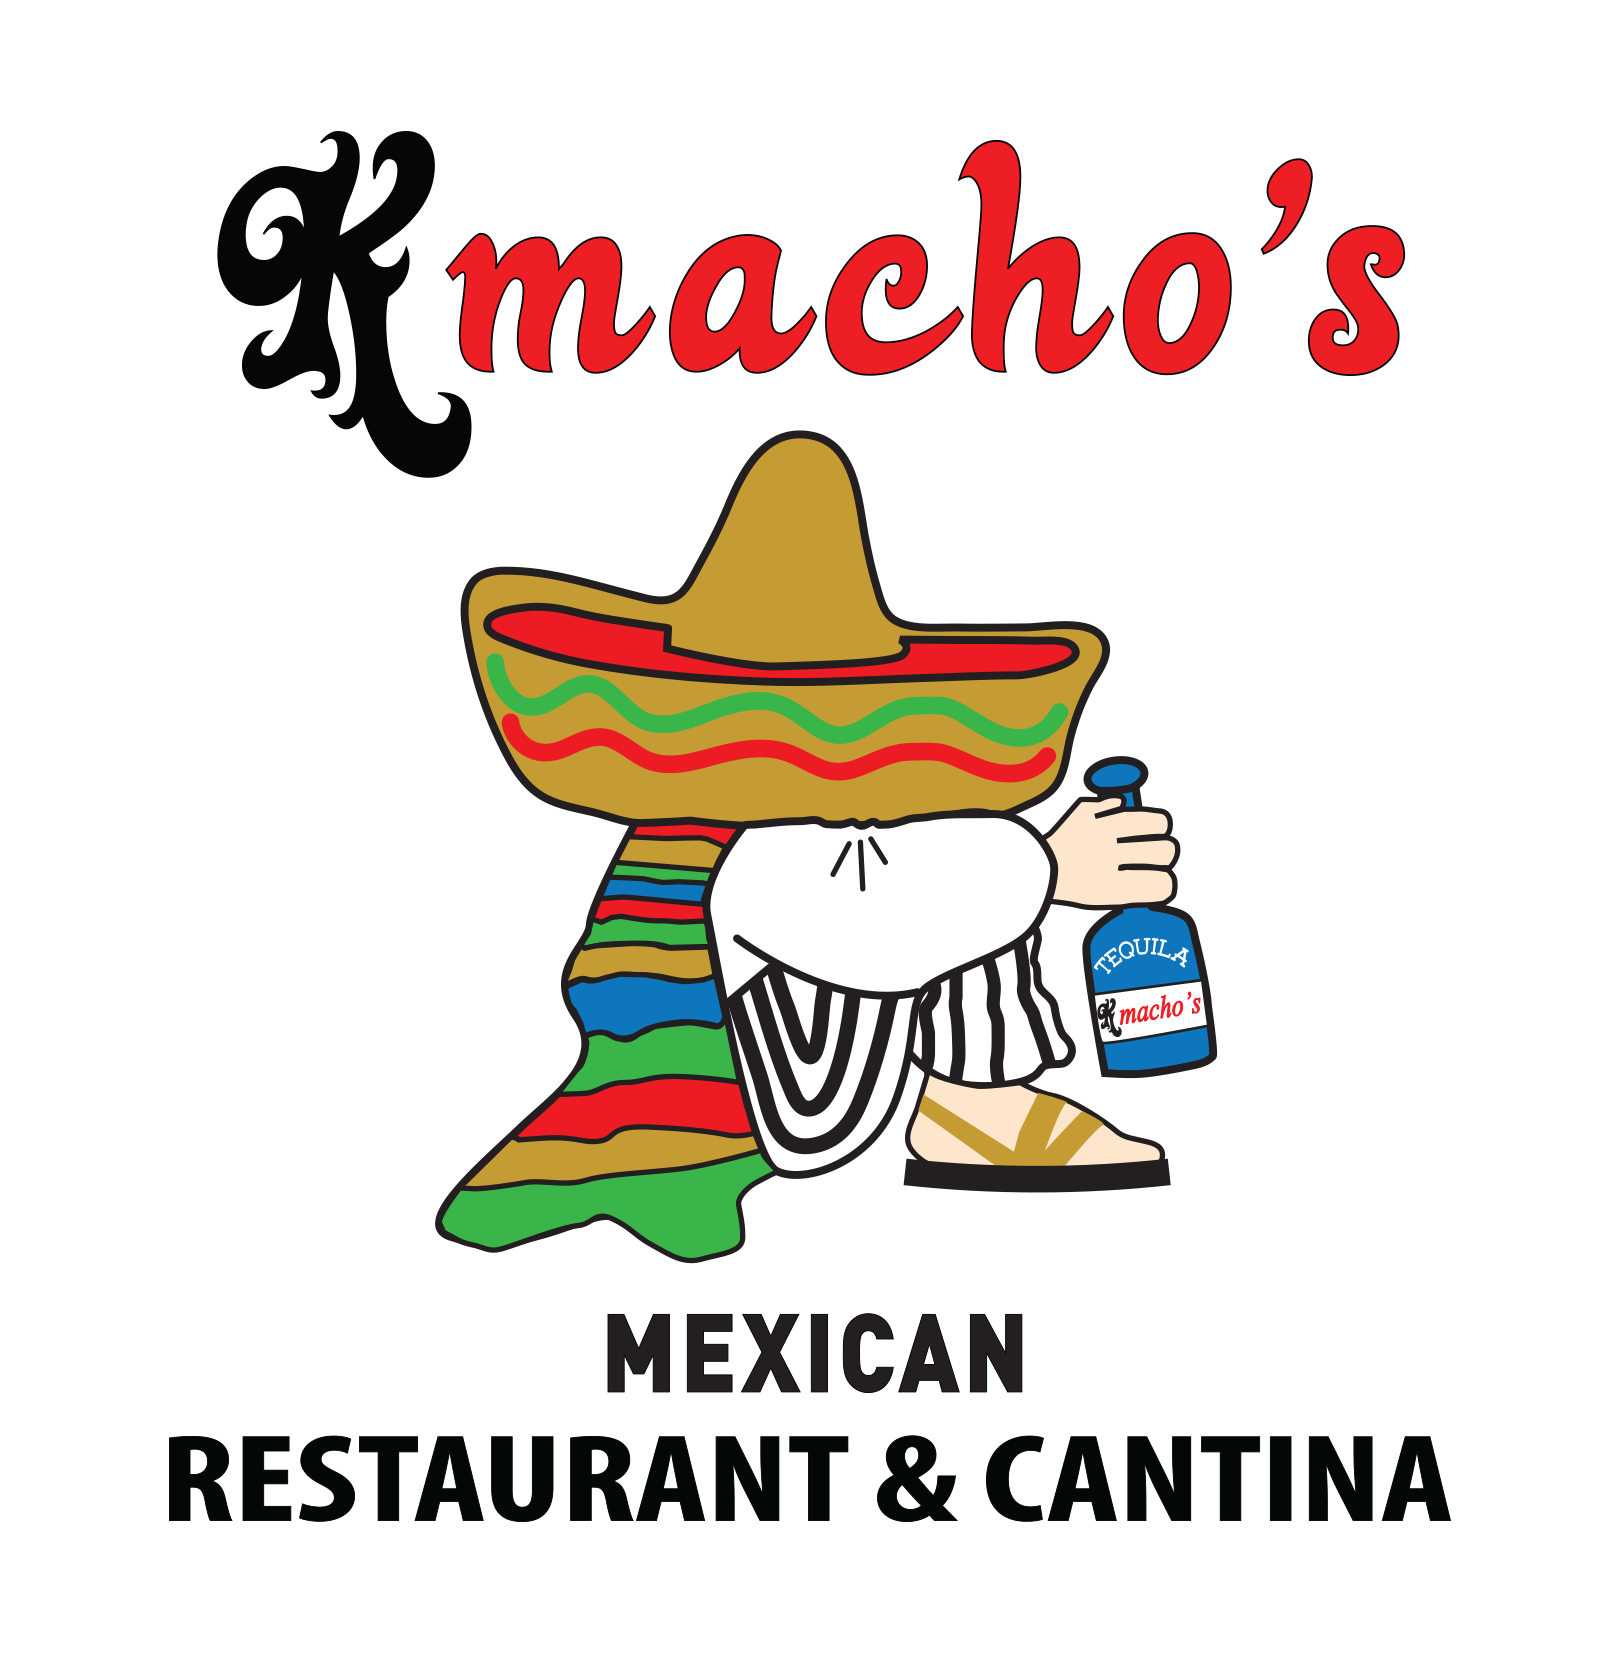 K-Macho's Mexican Grill and Cantina